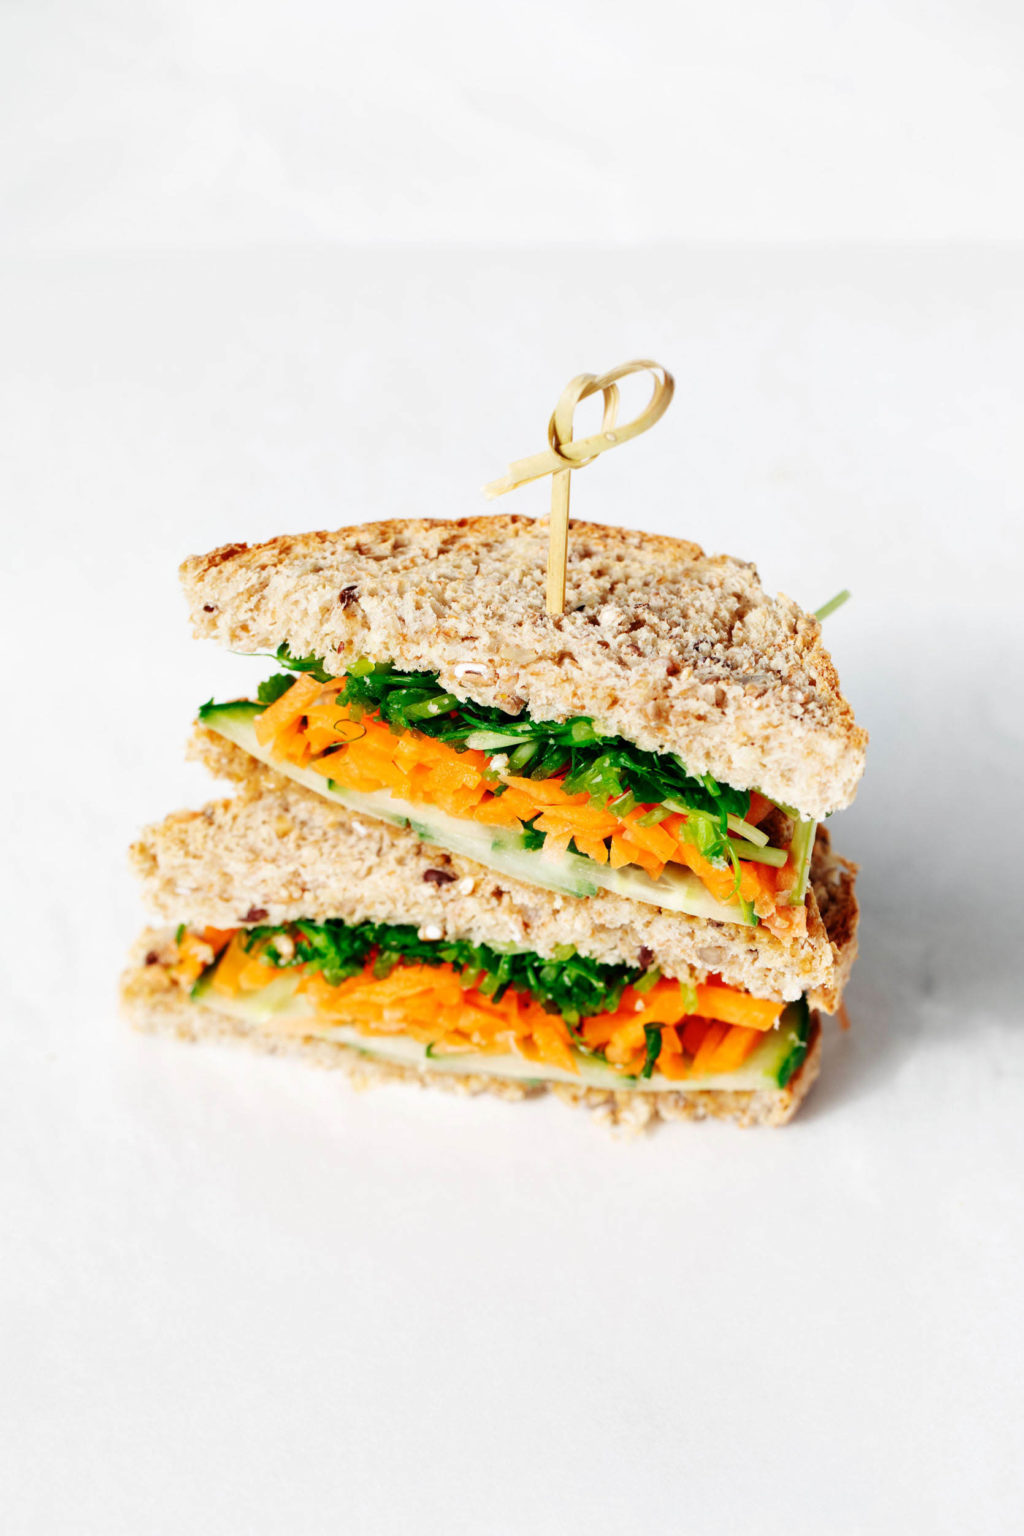 A whole grain, vegan miso tahini sandwich with fresh vegetables is stacked on a white surface.